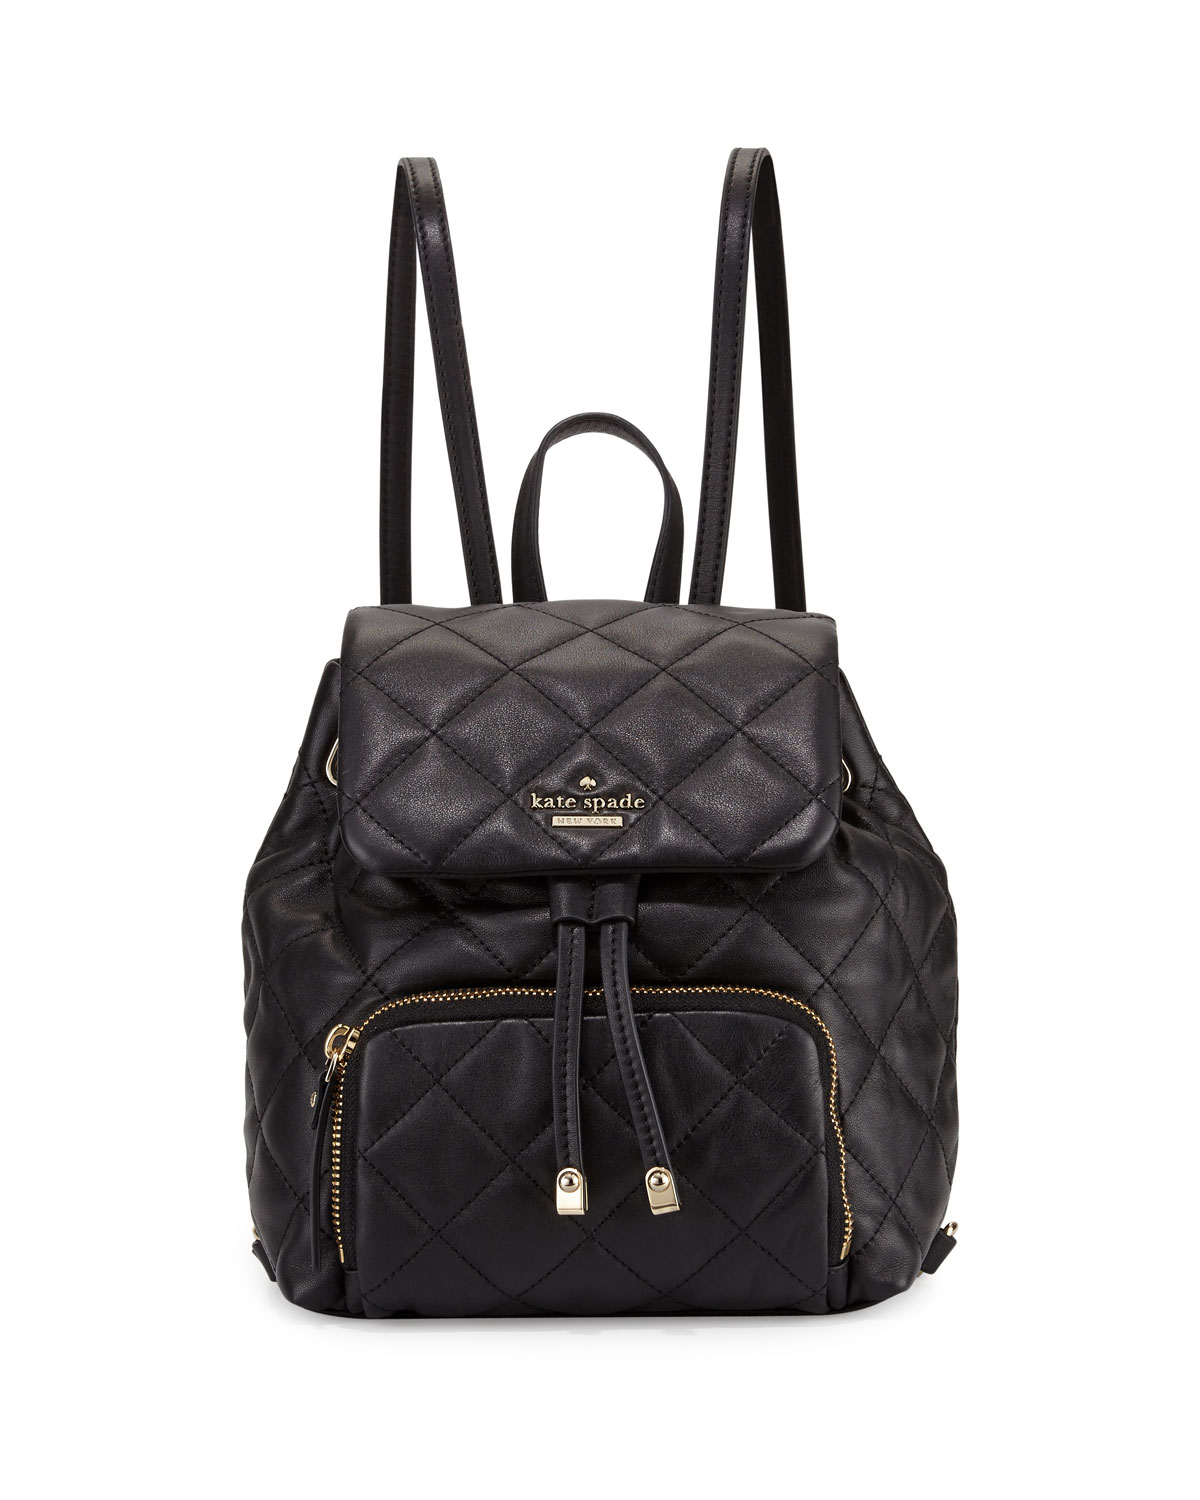 14a650389a1e kate spade new york emerson place jessa leather backpack